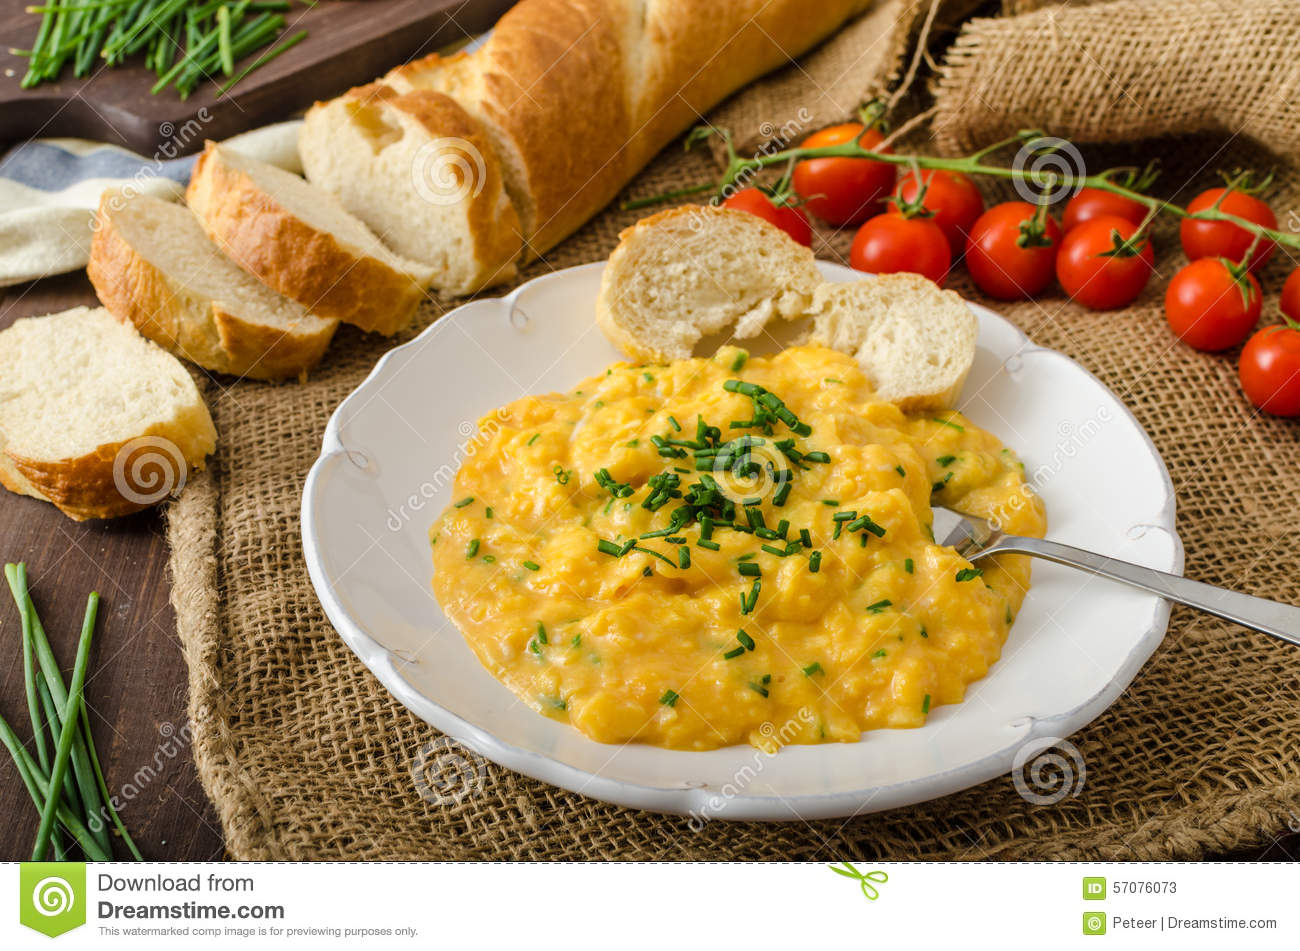 French style scrambled eggs with chives stock image for French style scrambled eggs